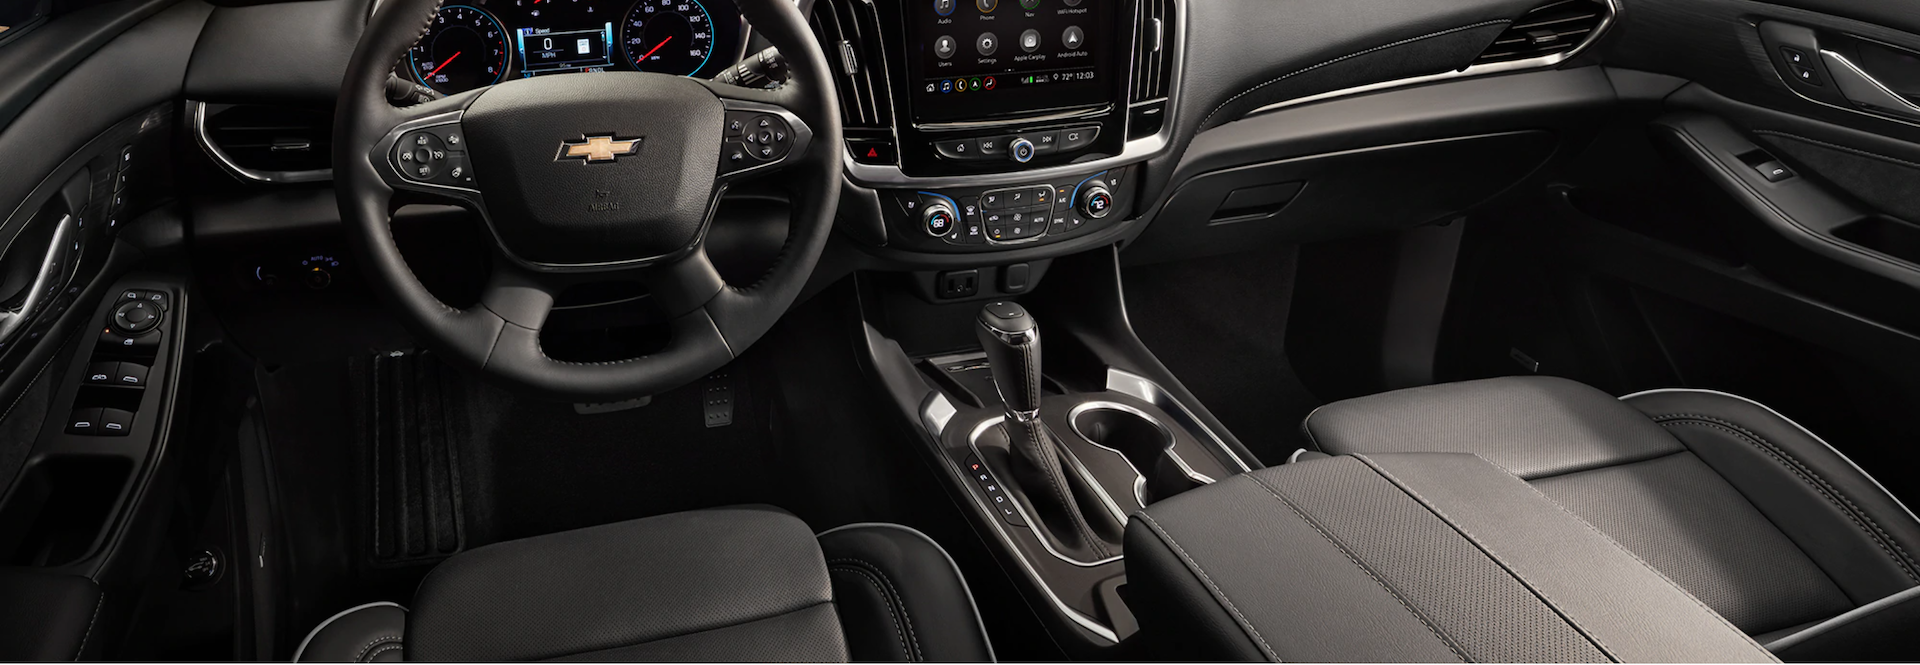 Picture of the interior view of the New 2021 Chevrolet Traverse